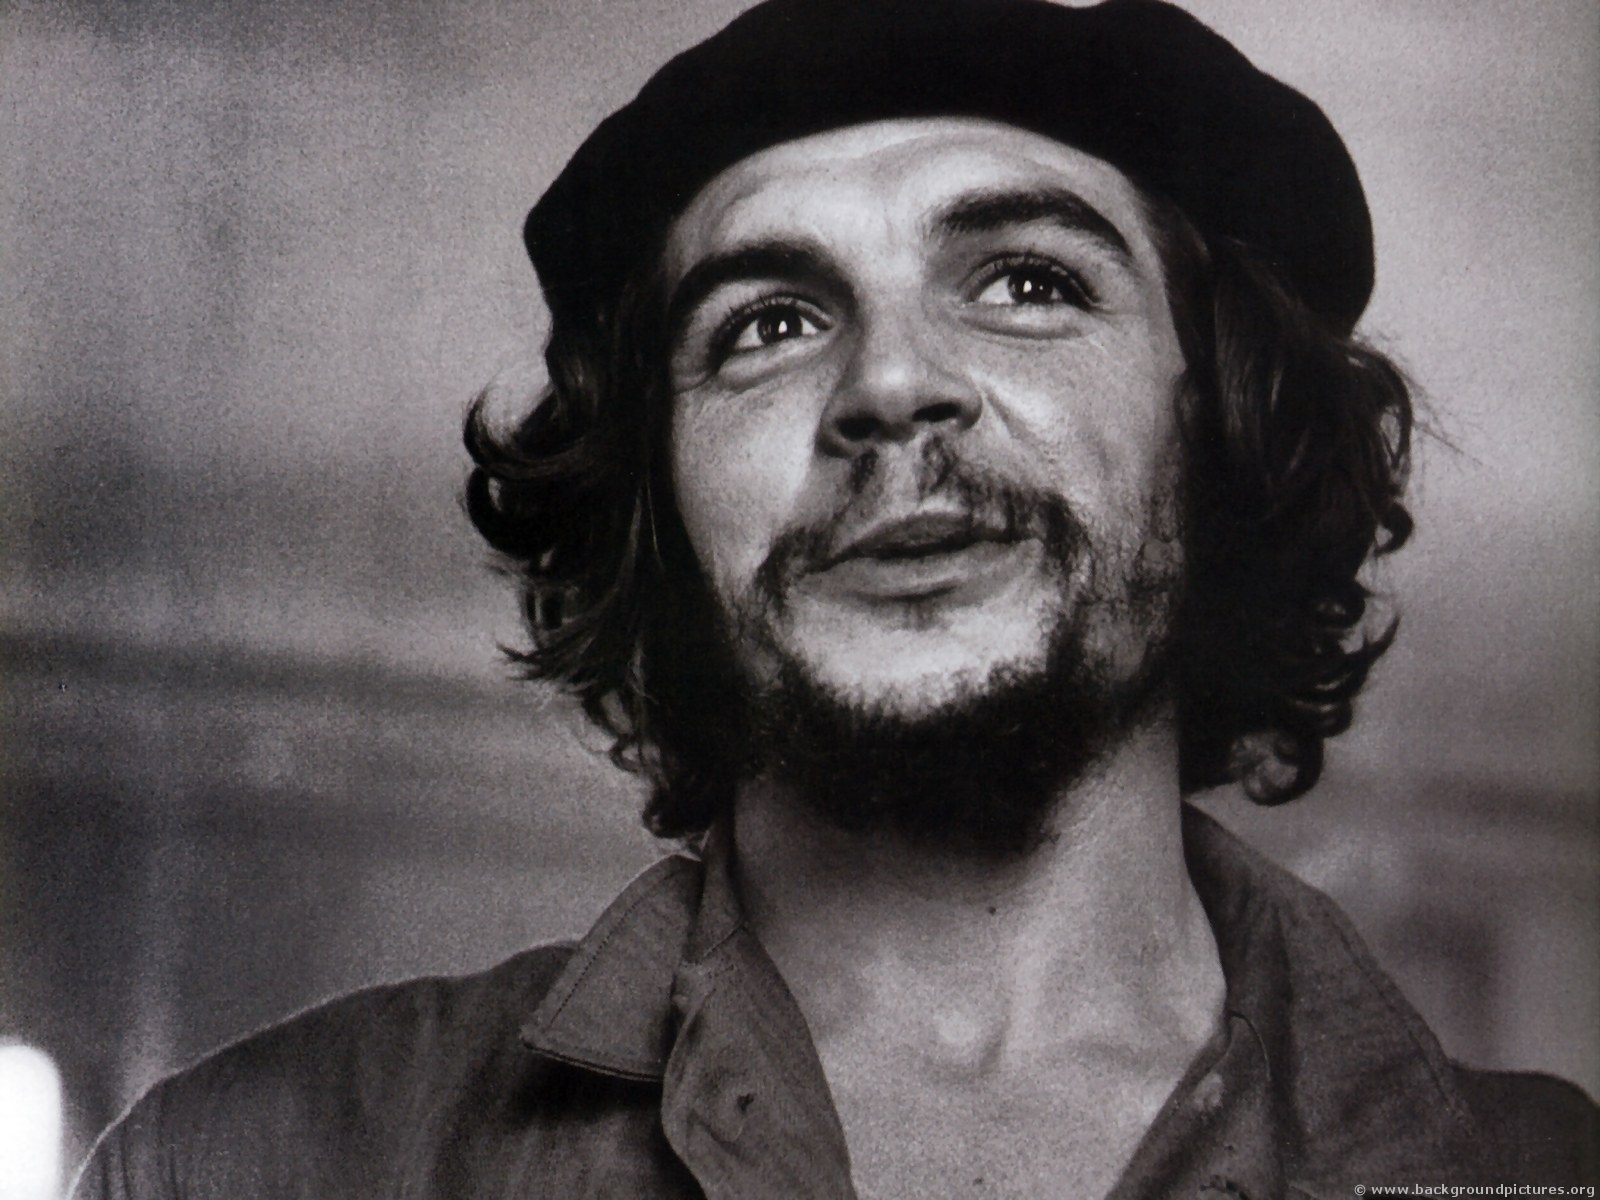 Unknown/Associated Press - Che Guevara, reported dead ... |Who Killed Che Guevara